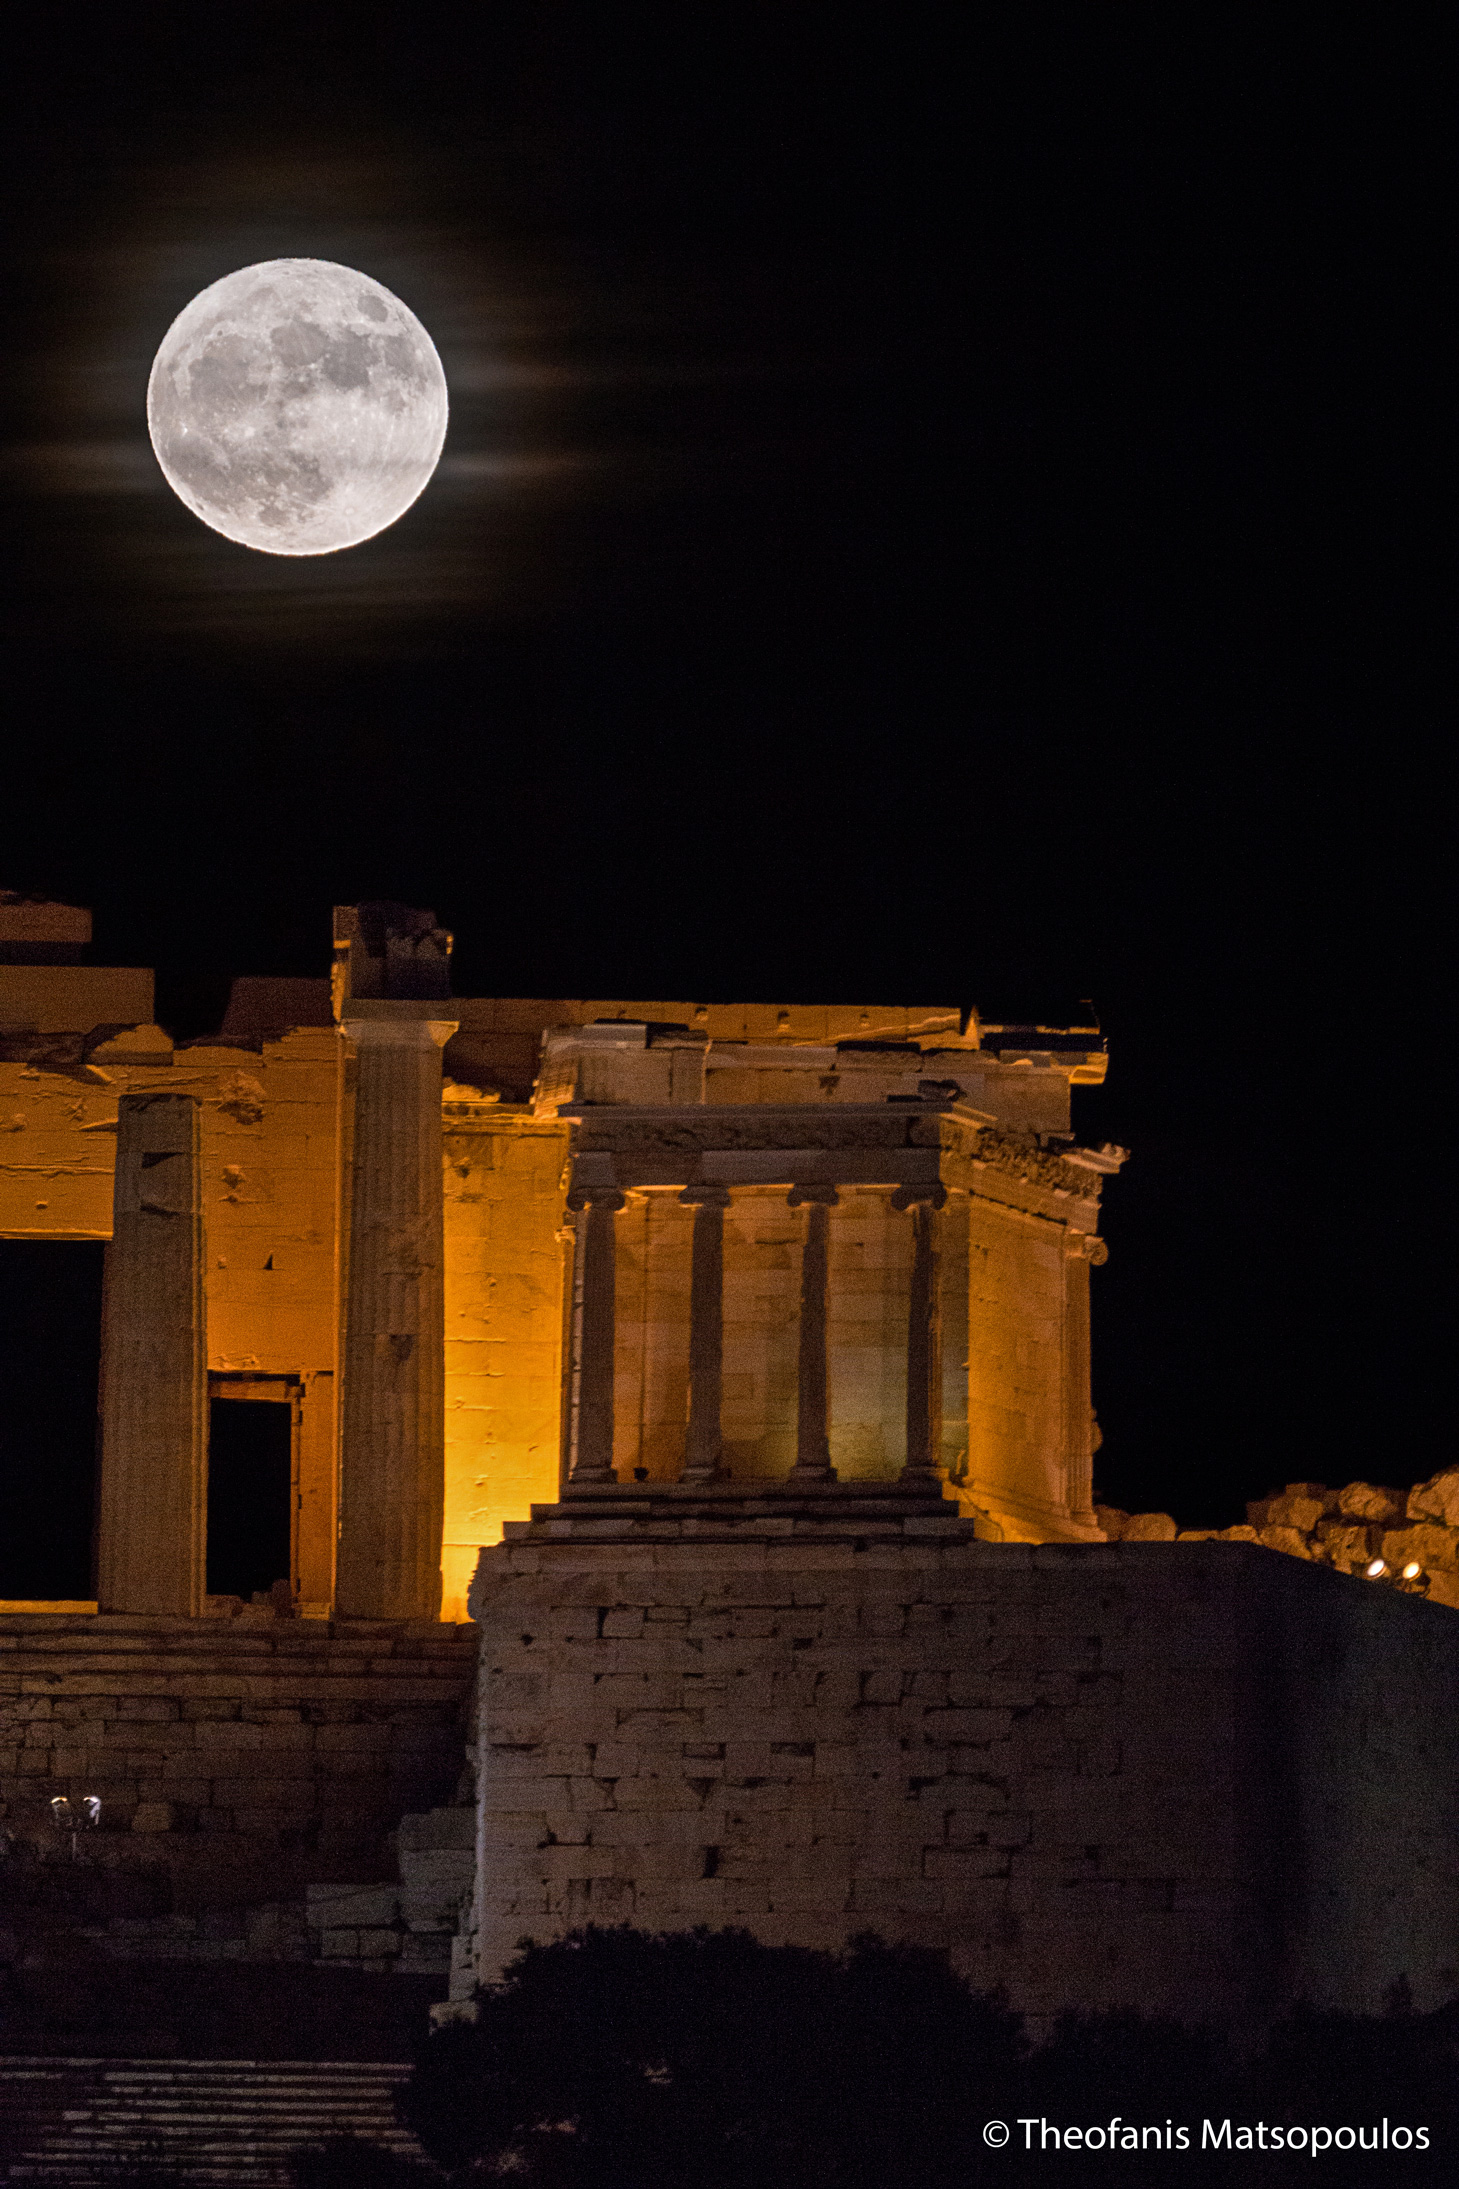 Acropolis-Super-Full-Moon-Matsopoulos3